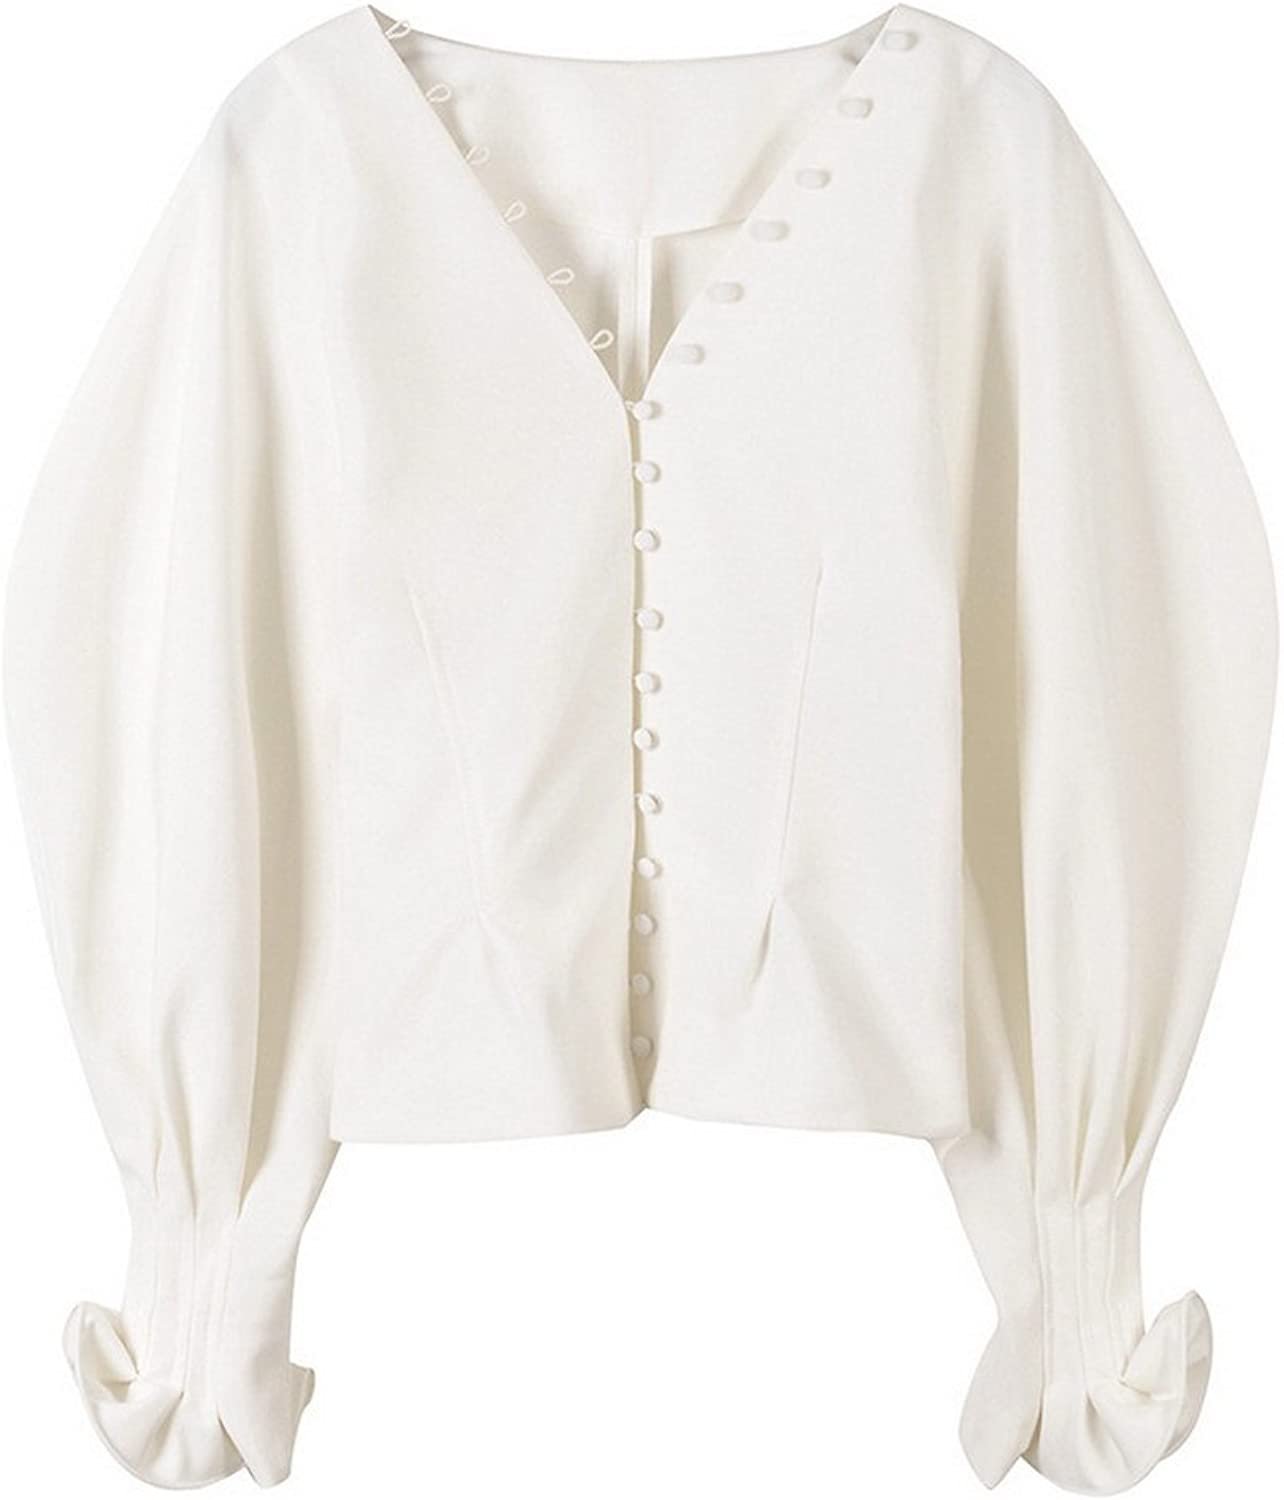 Get The Looks Buttons Up Voluminous Puff Sleeve Blouse